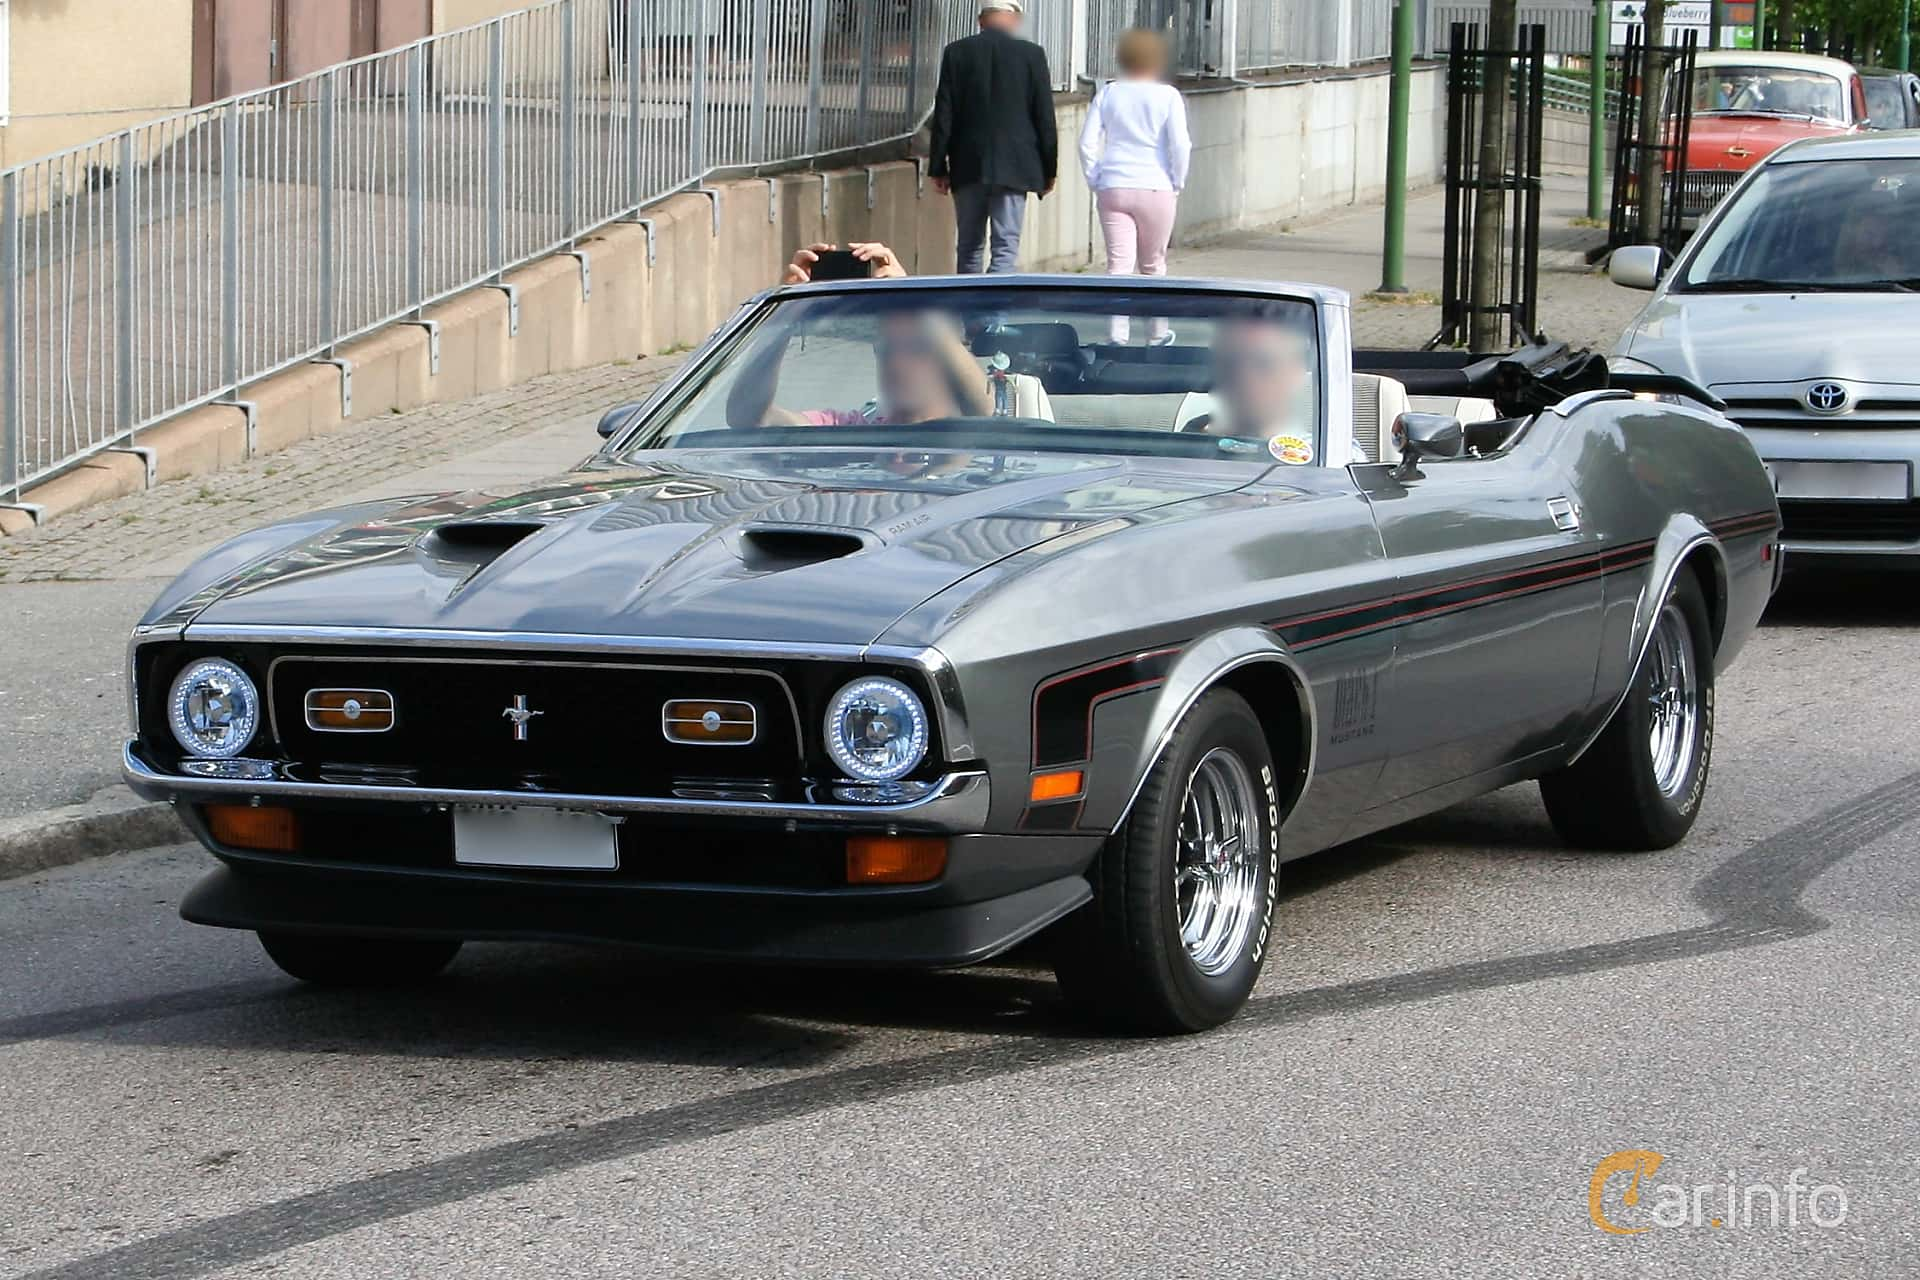 Front side of ford mustang convertible 4 9 v8 automatic 137ps 1972 at kungälvscruisingen